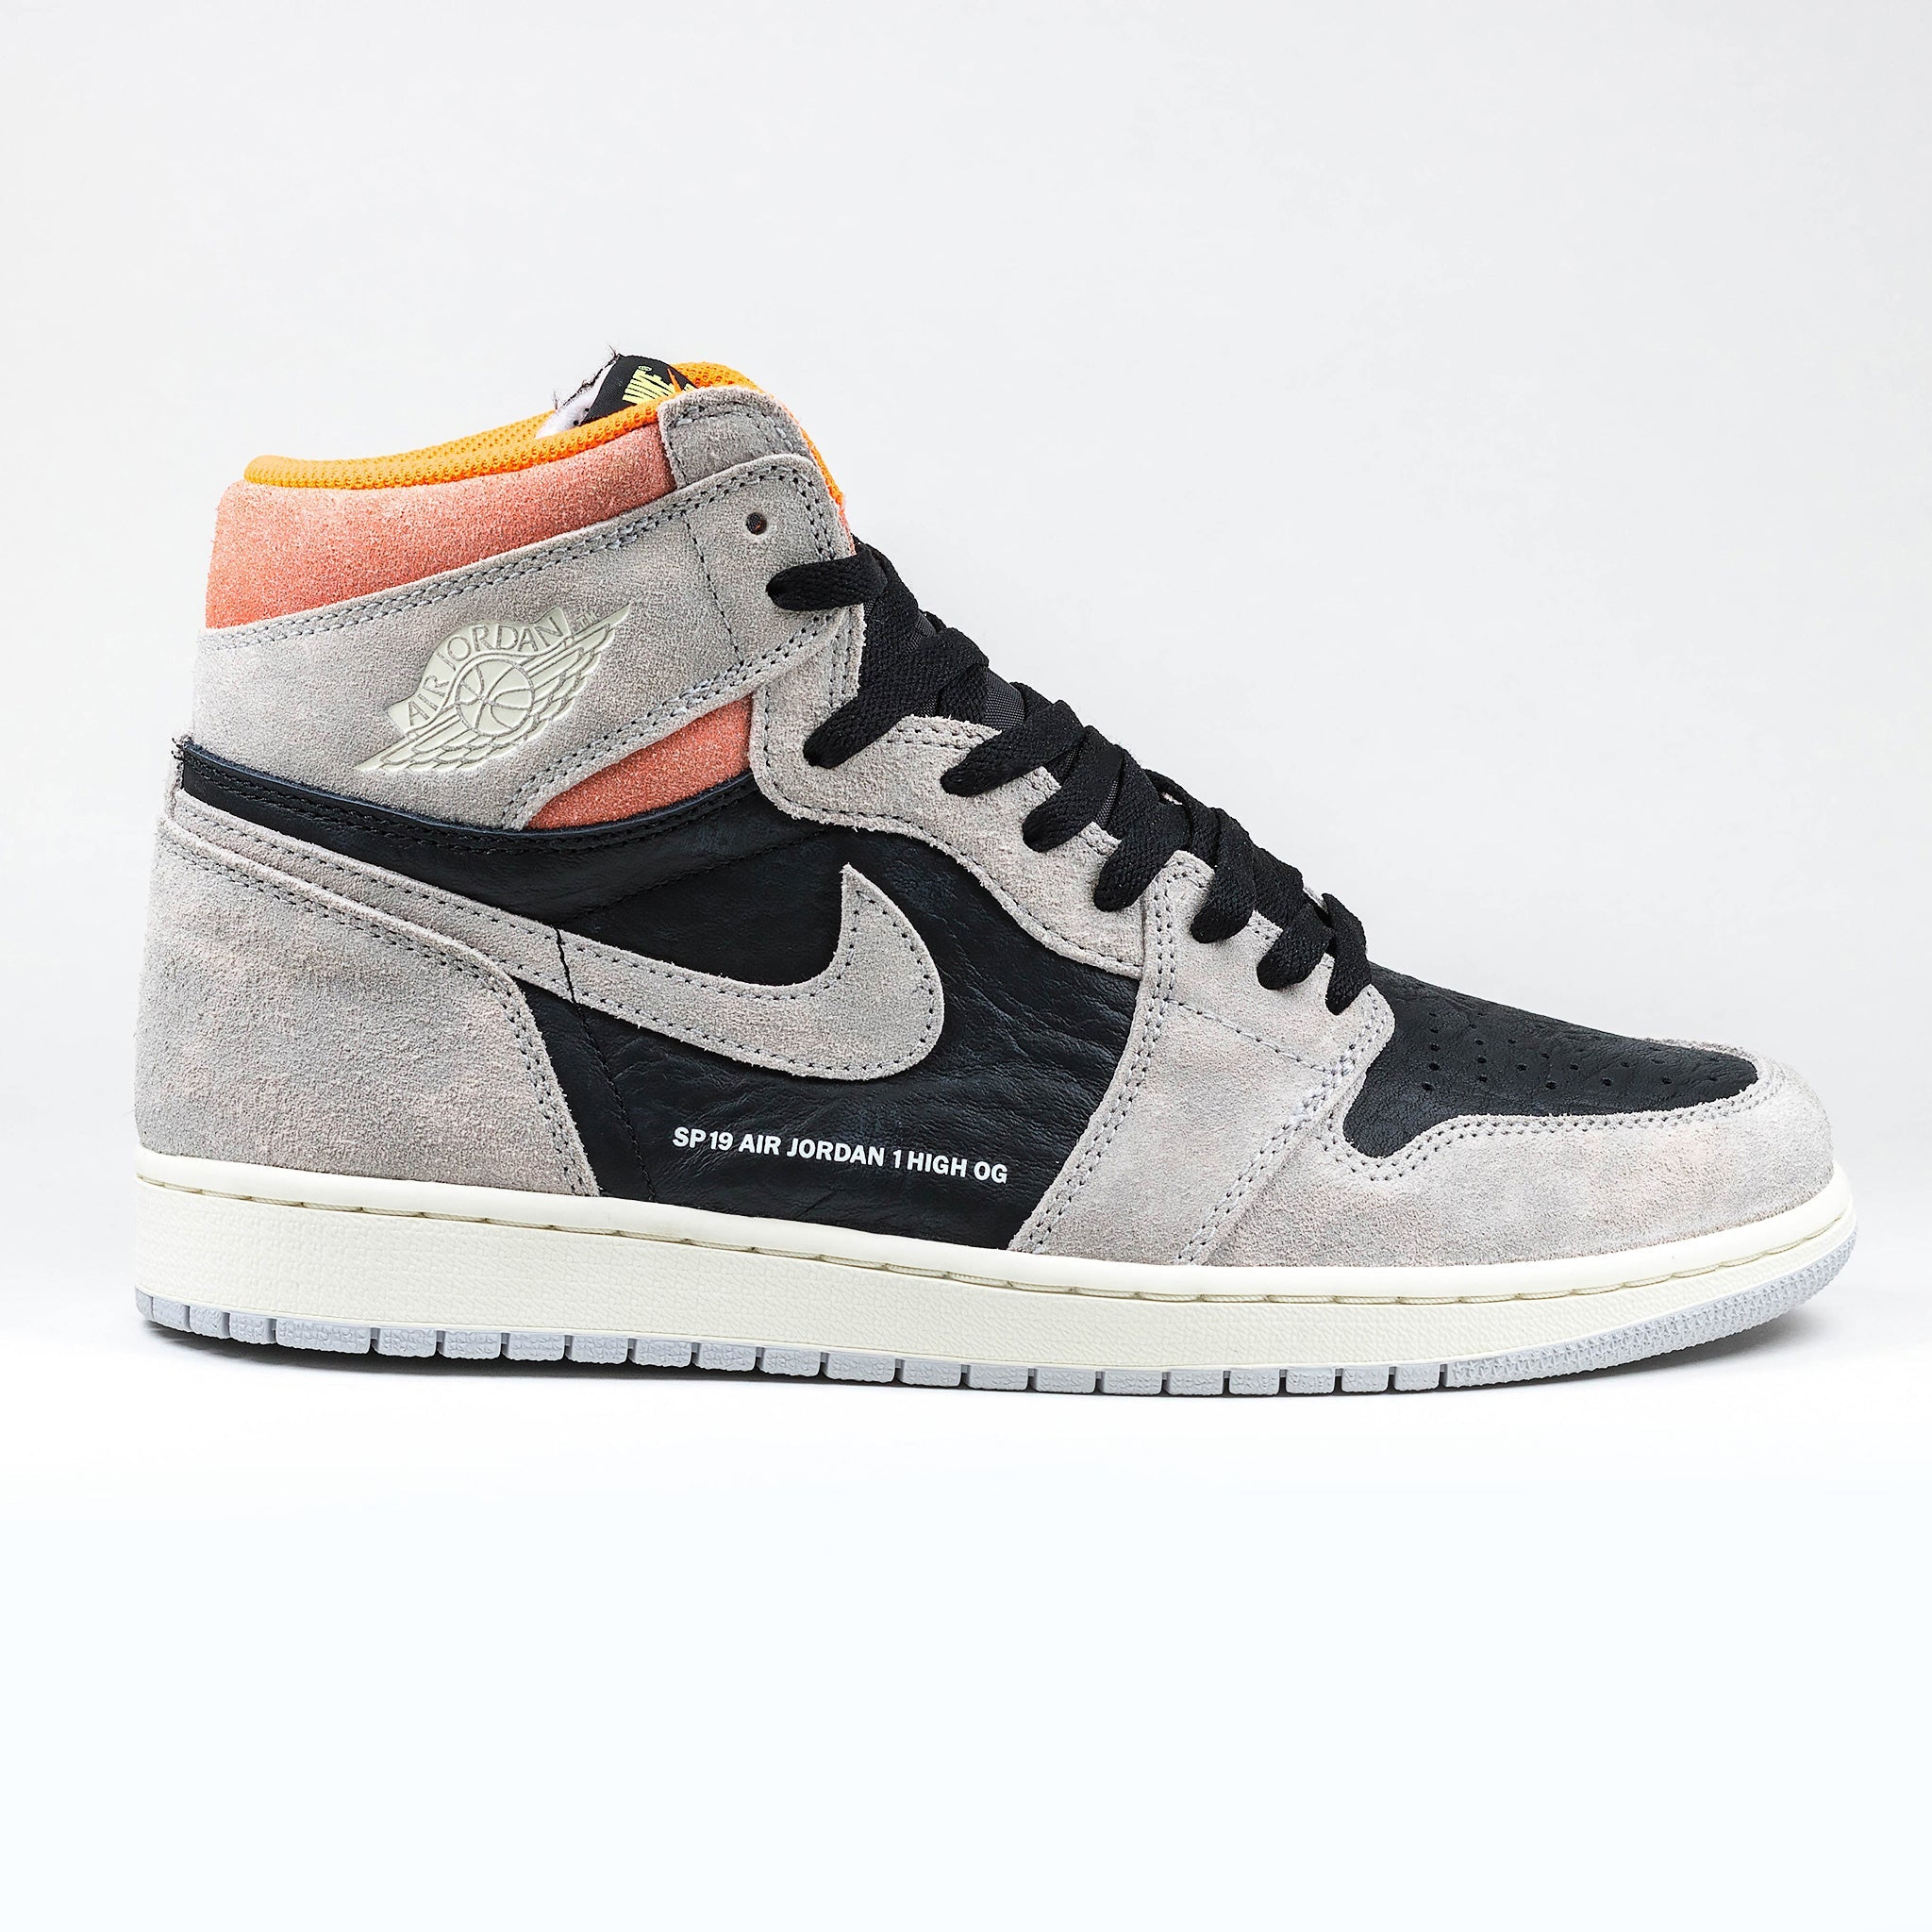 promo code afd2a 84673 Nike Air Jordan 1 Retro High Neutral Grey Hyper Crimson